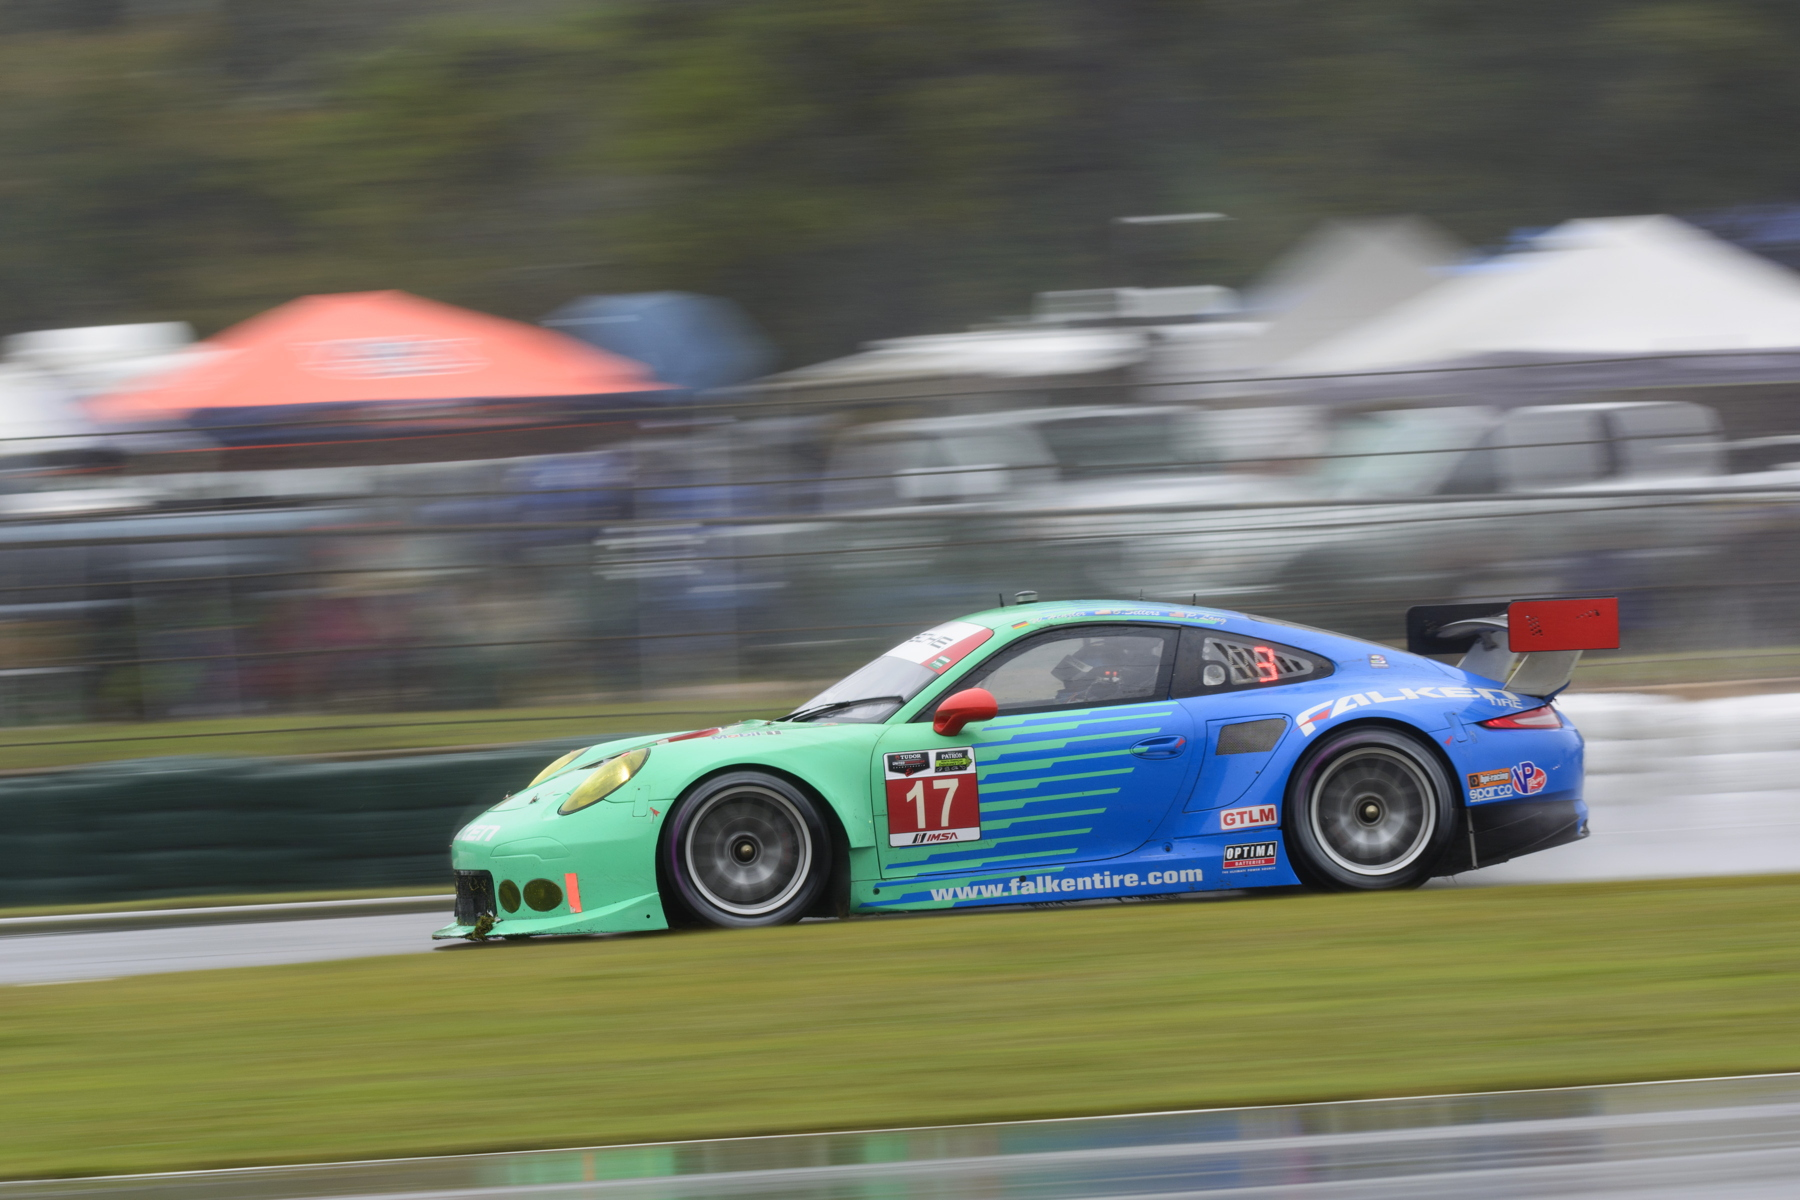 The Walker Racing-run Team Falken bowed out of competition with 11th place overall having been an early contender for the win.